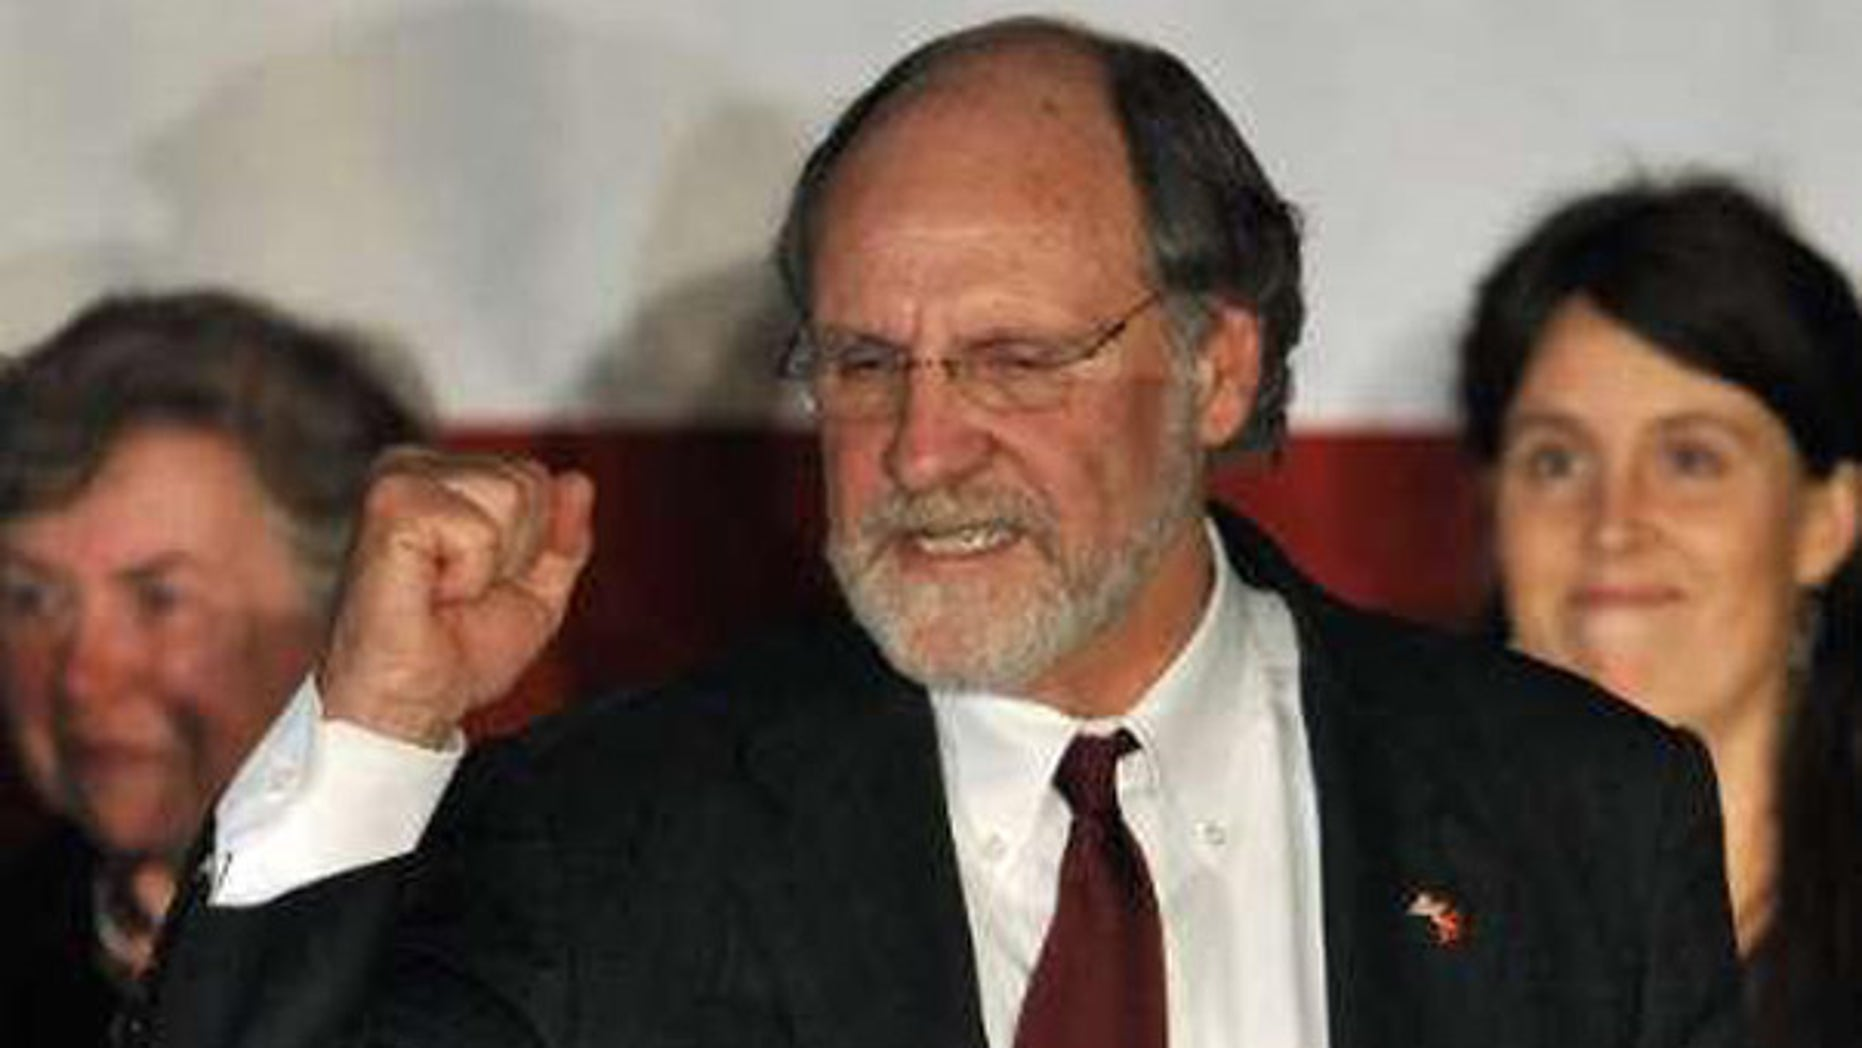 New Jersey Governor Jon Corzine (D-NJ) concedes defeat to GOP candidate Chris Christie at his election headquarters in East Brunswick, New Jersey, November 3, 2009. (Reuters)